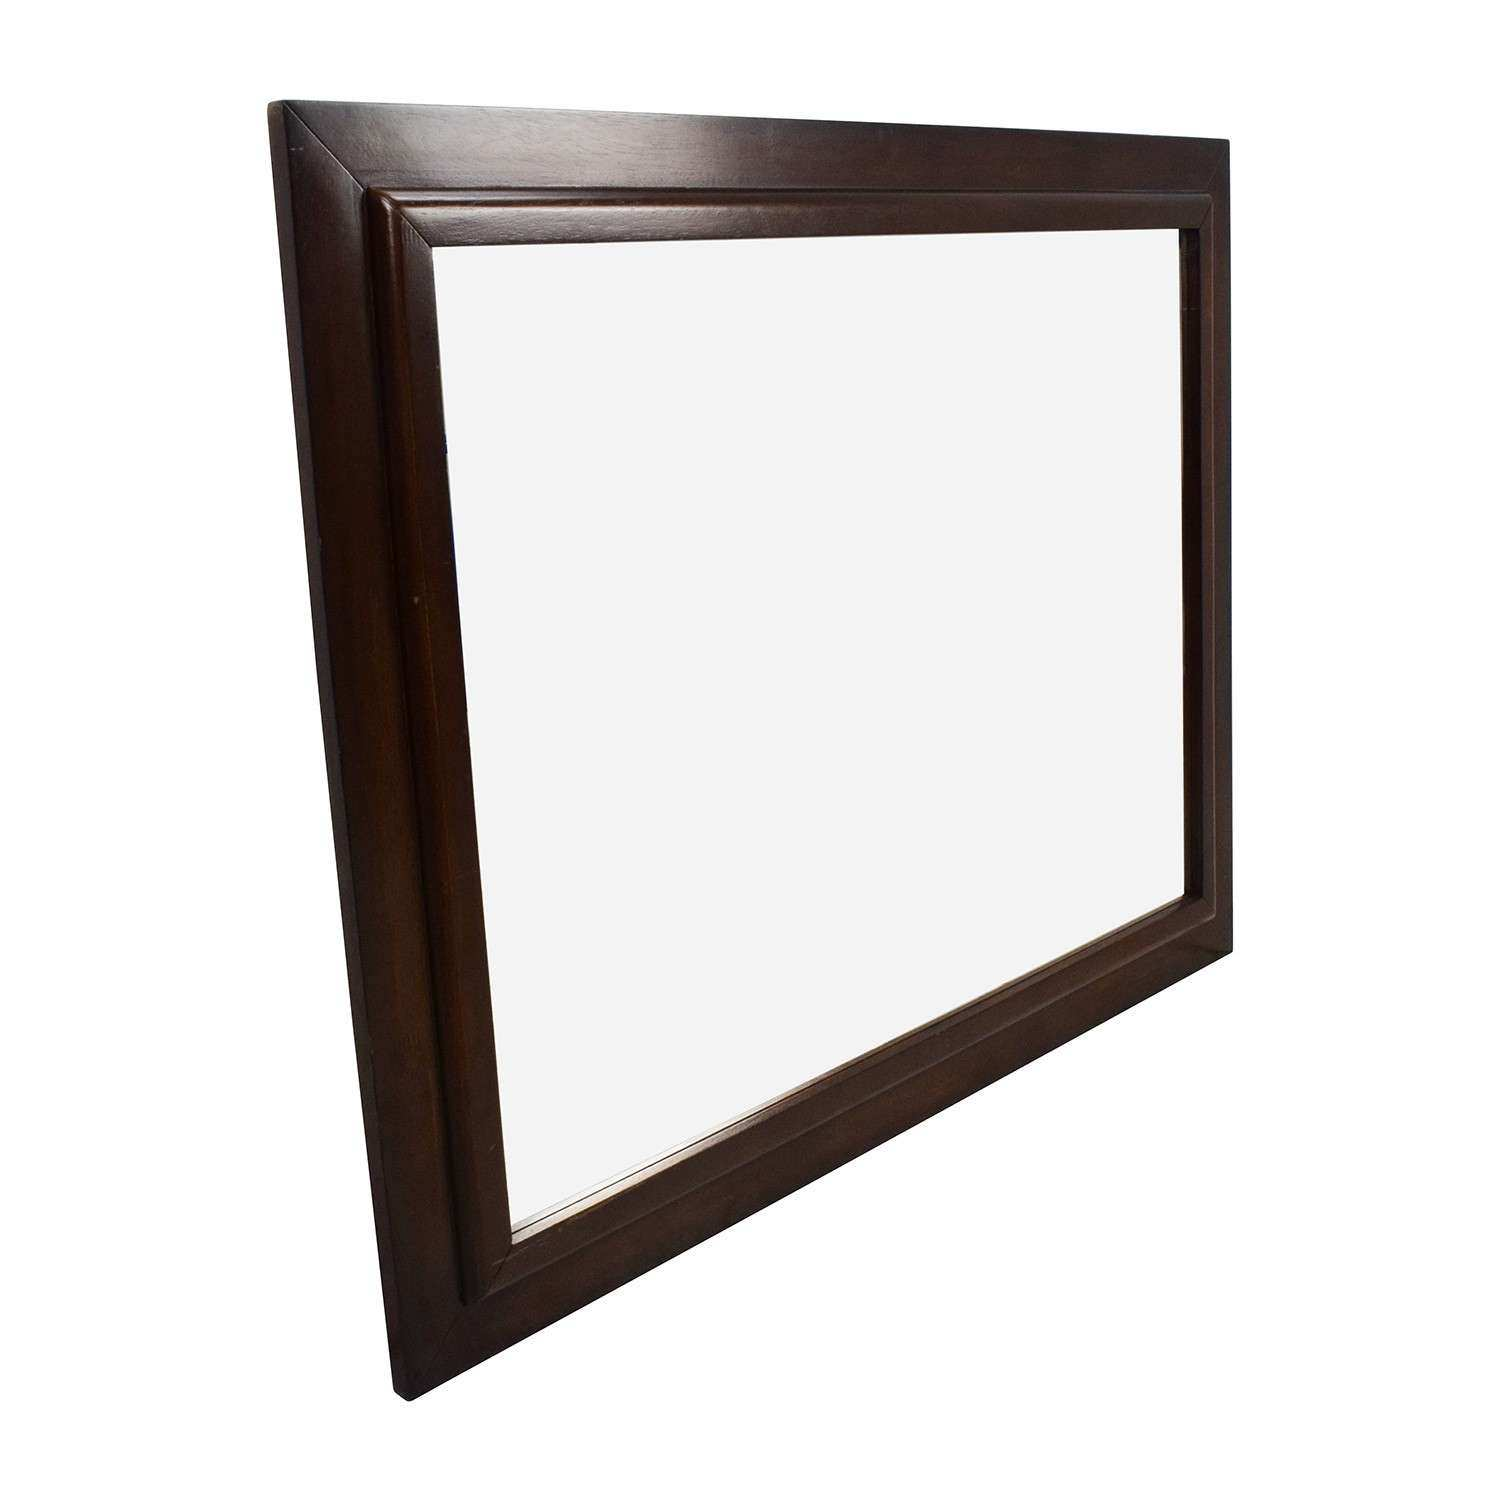 OFF Square Wood Framed Wall Mirror Decor